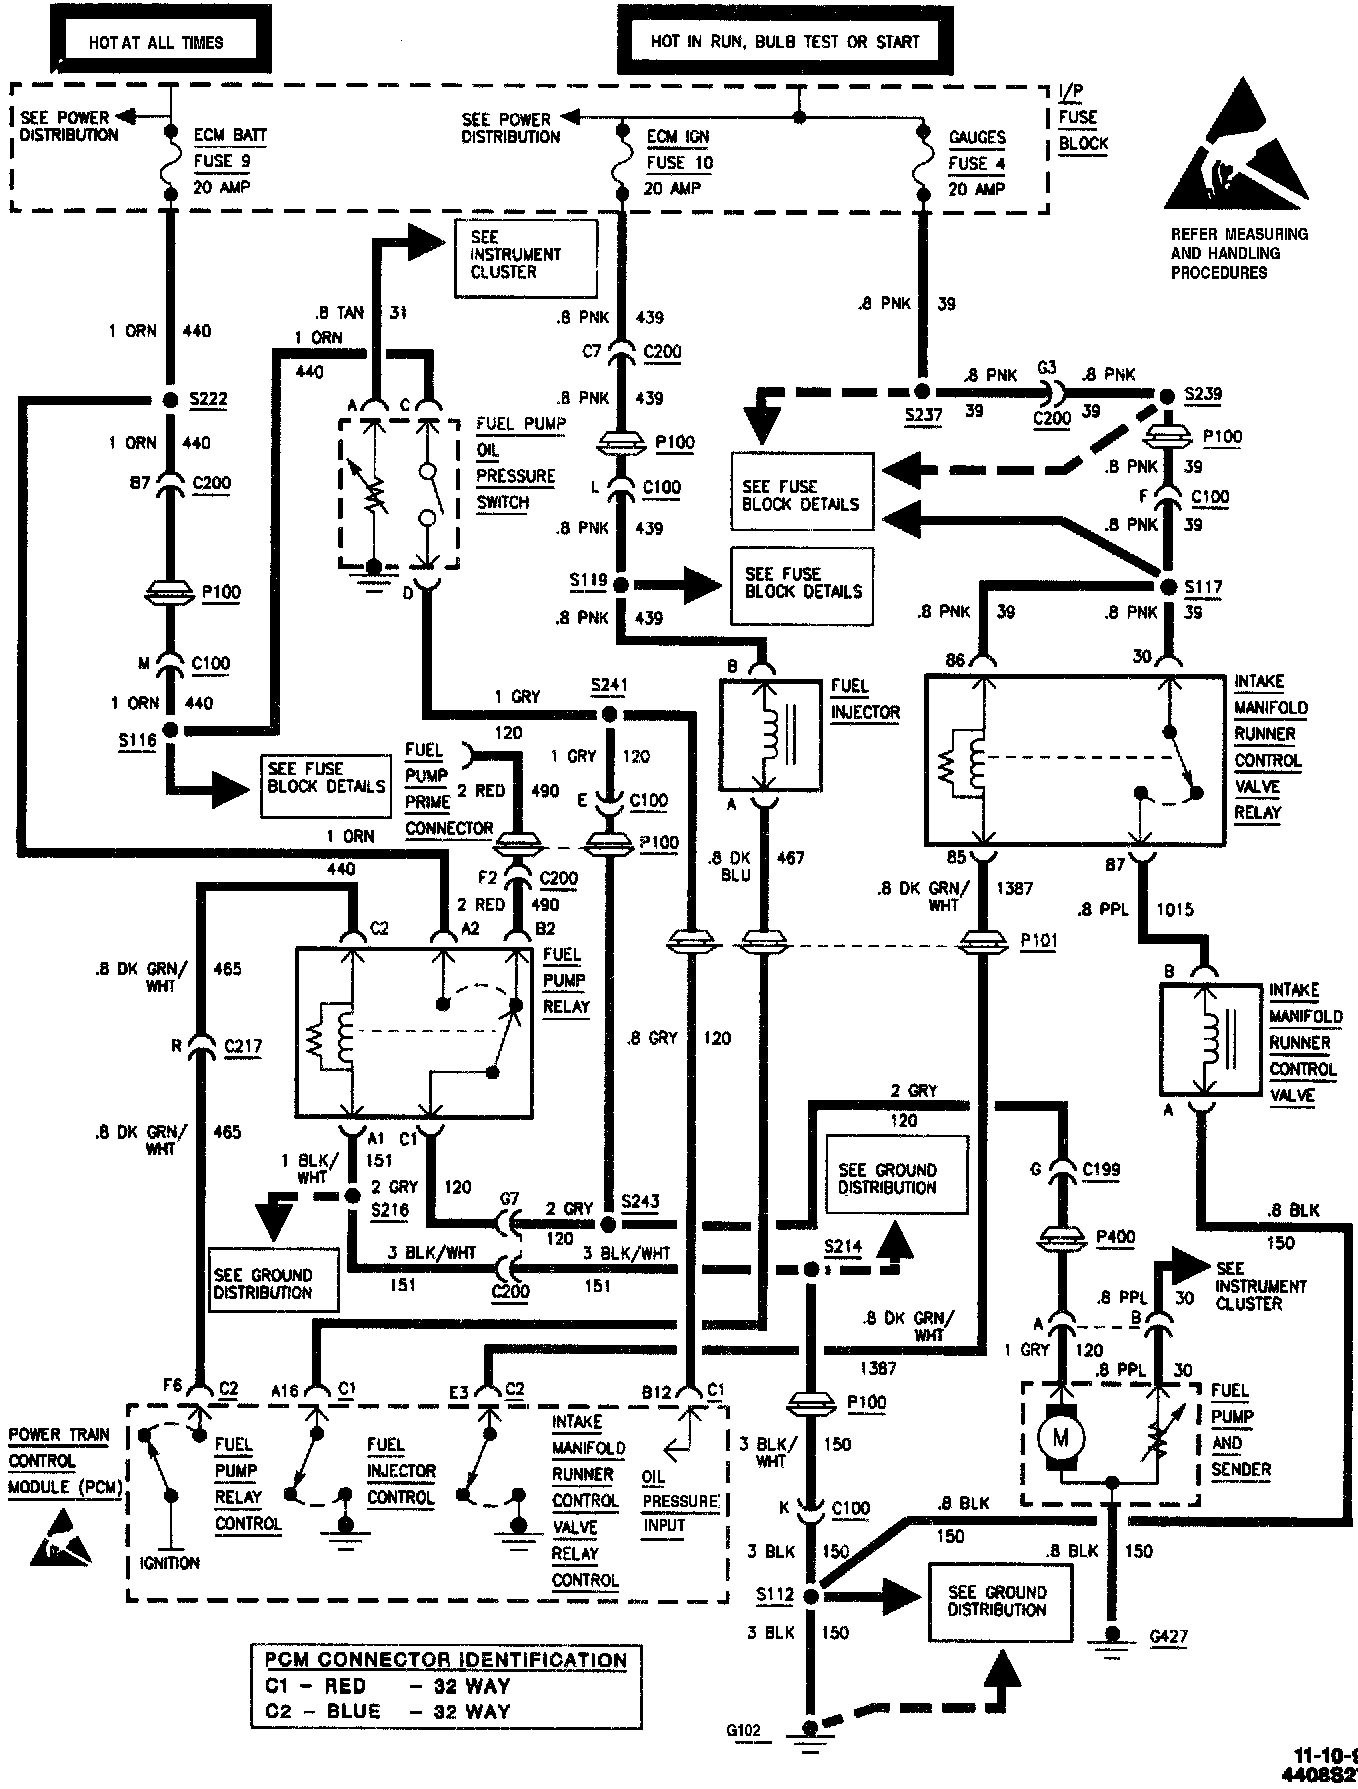 hight resolution of 1991 s10 steering column wiring diagram free download my wiring 1991 s10 steering column wiring diagram free download